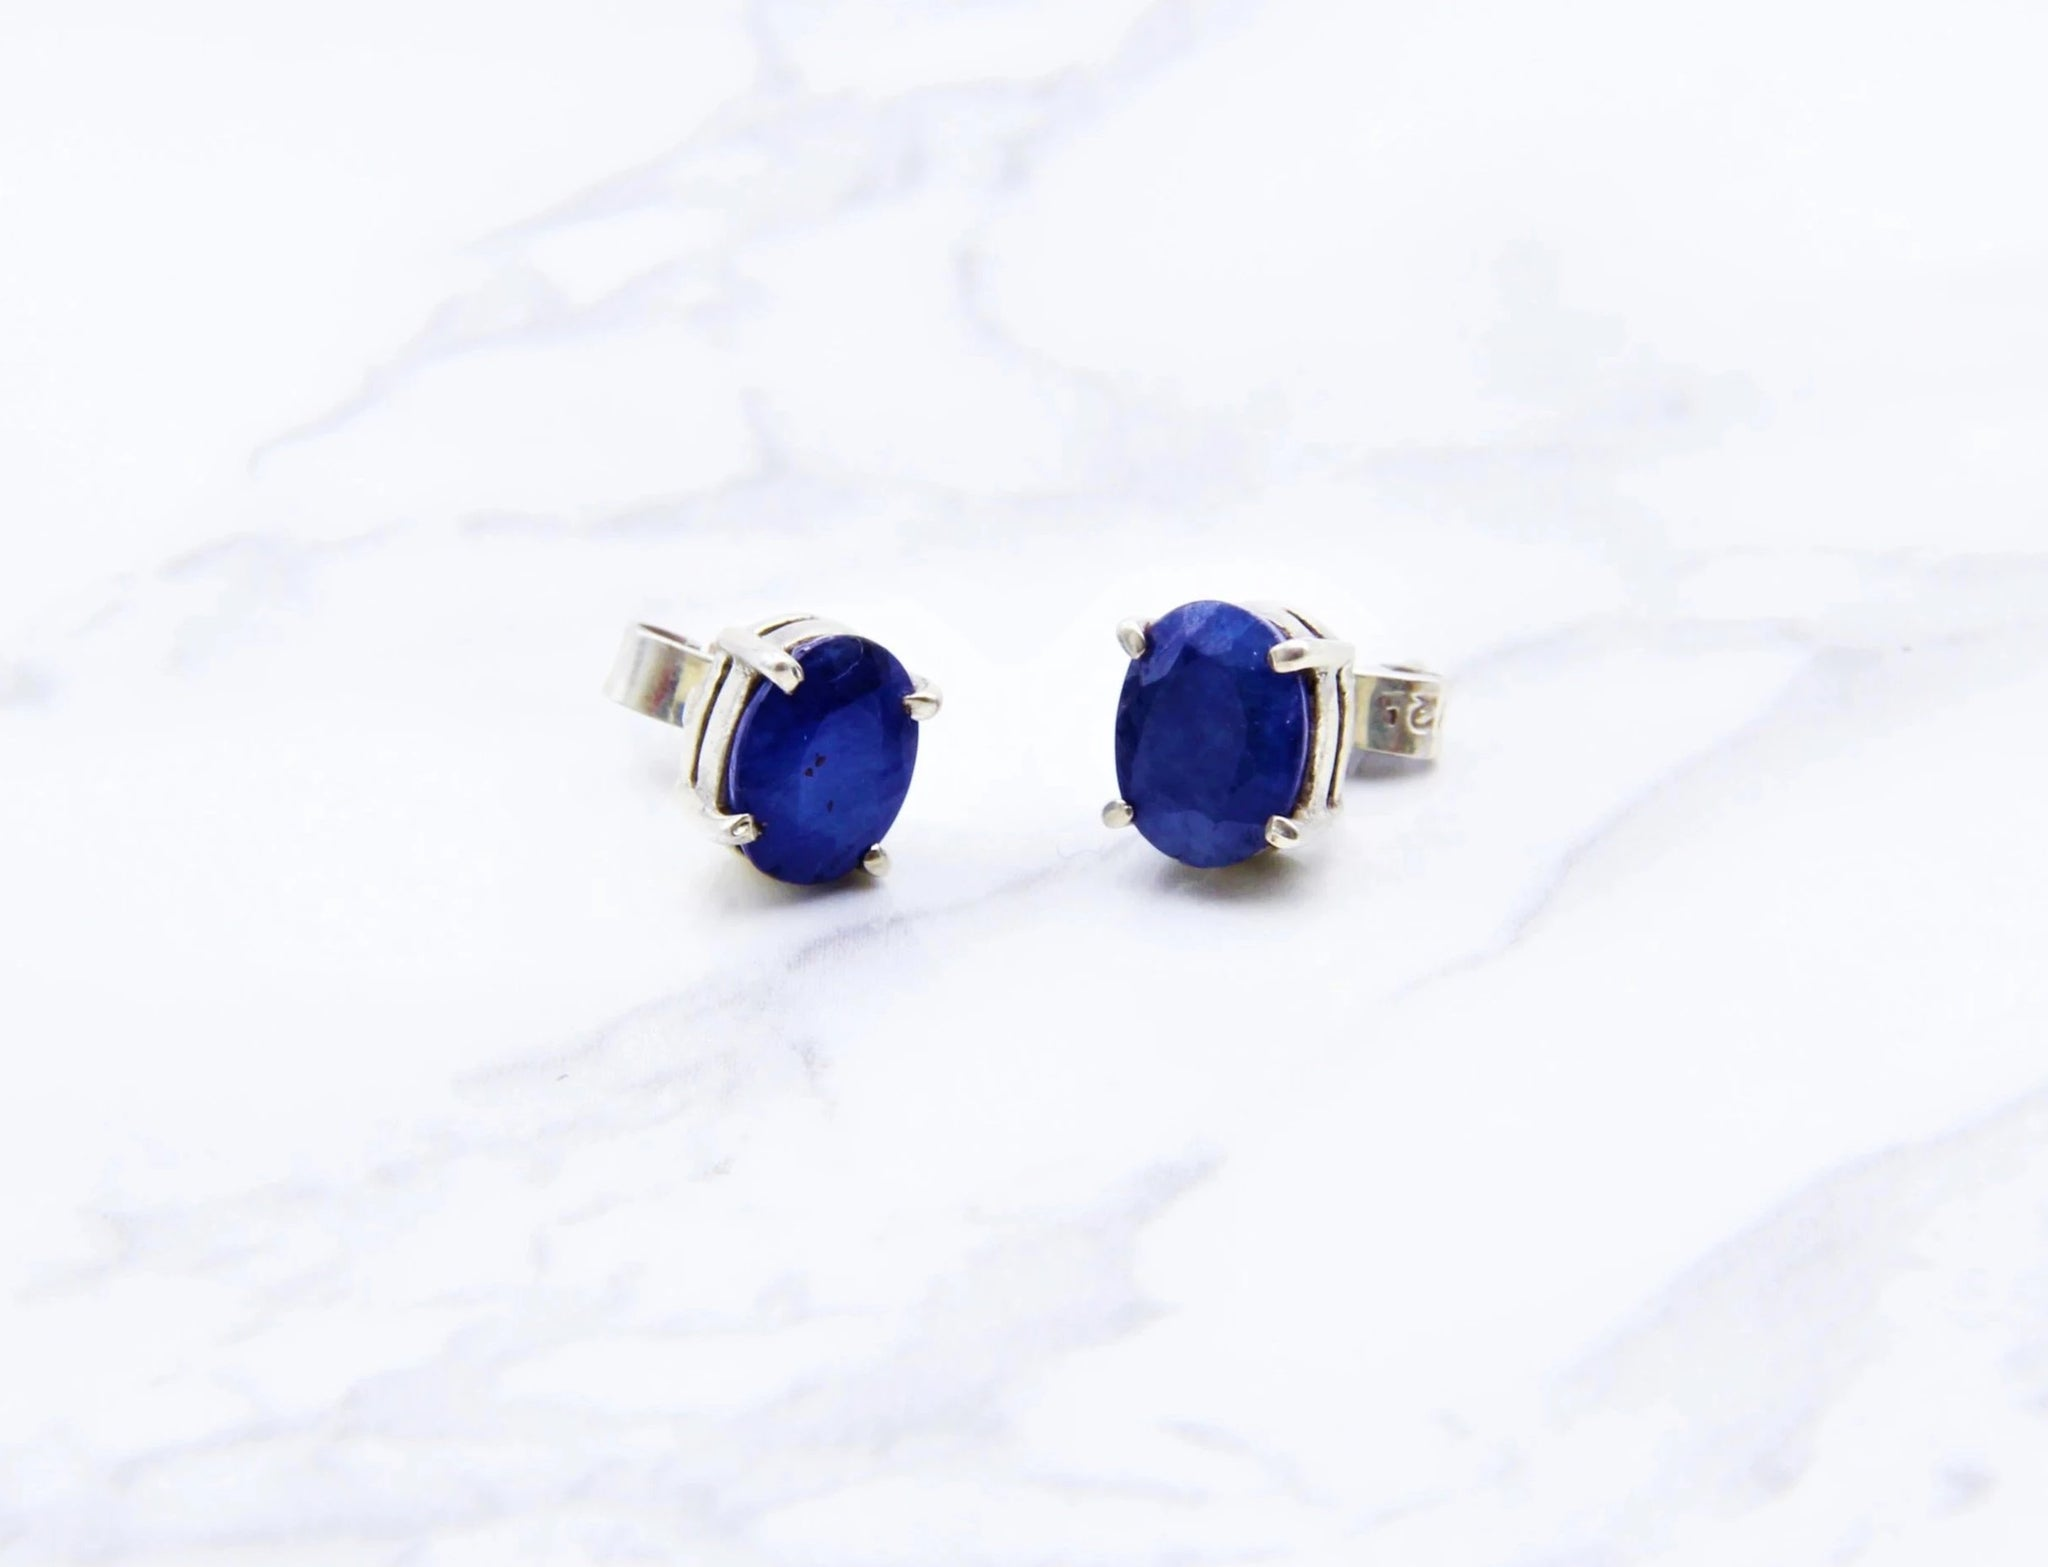 Sapphire Gem Earrings - Earth's Treasures